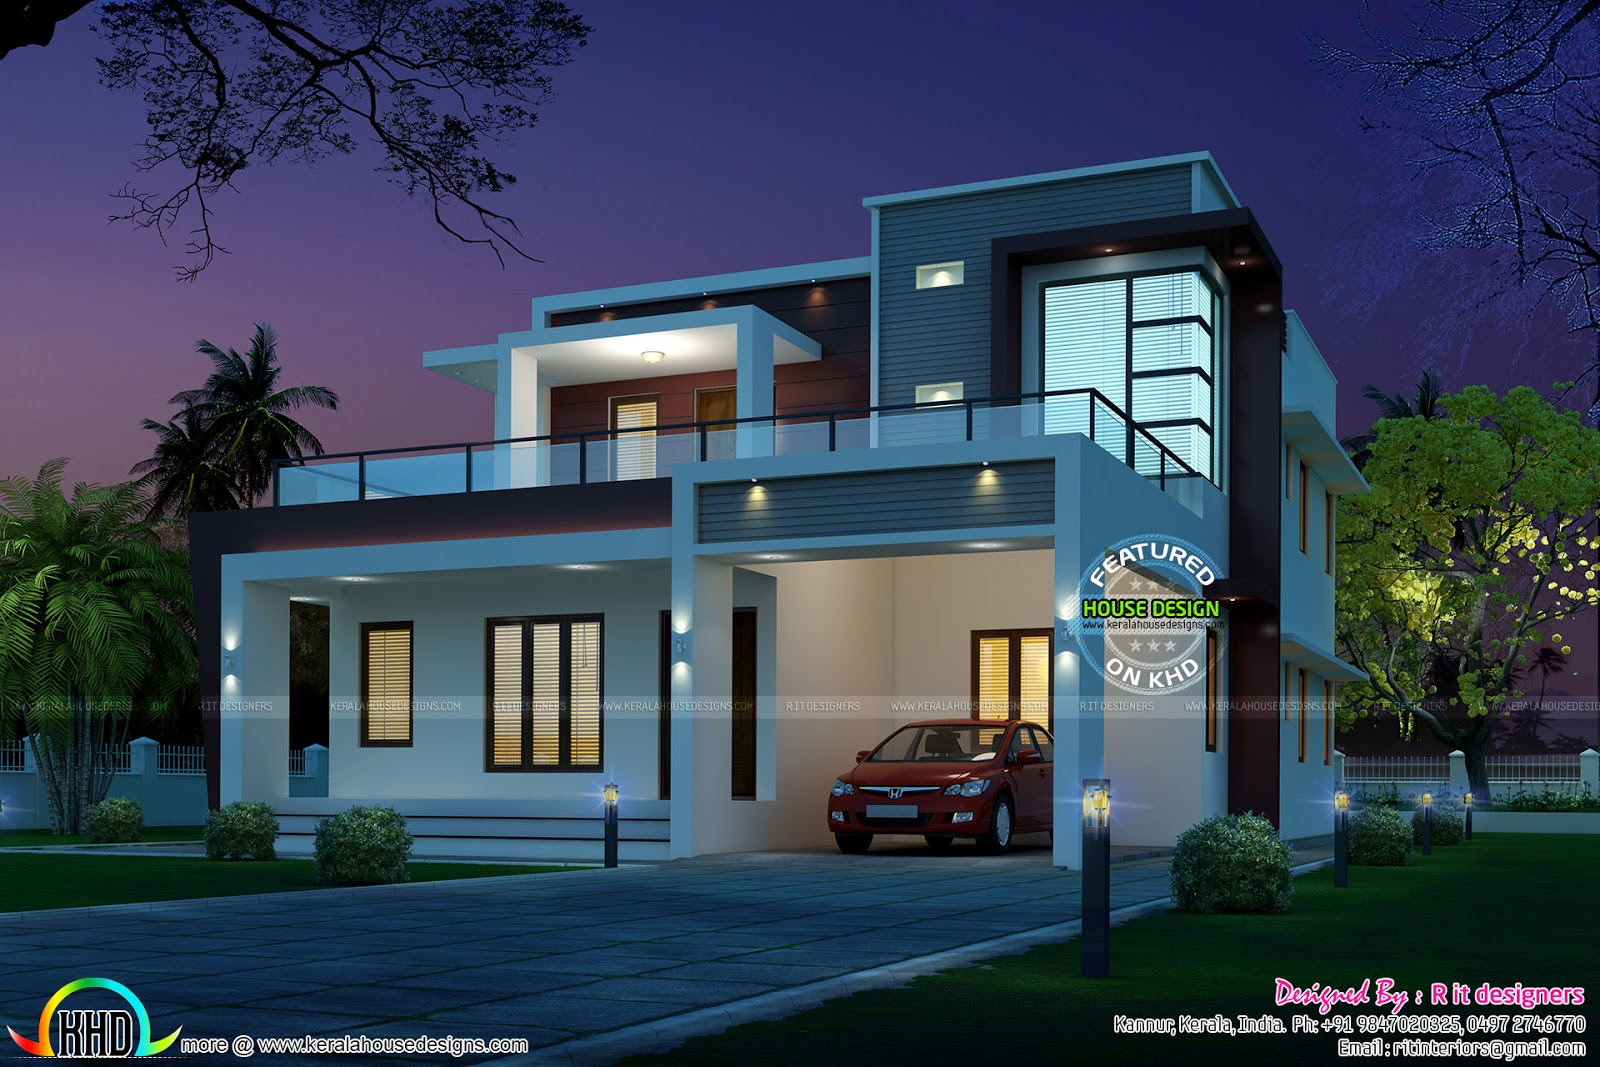 245 sq m modern home night view kerala home design and for Modern house view